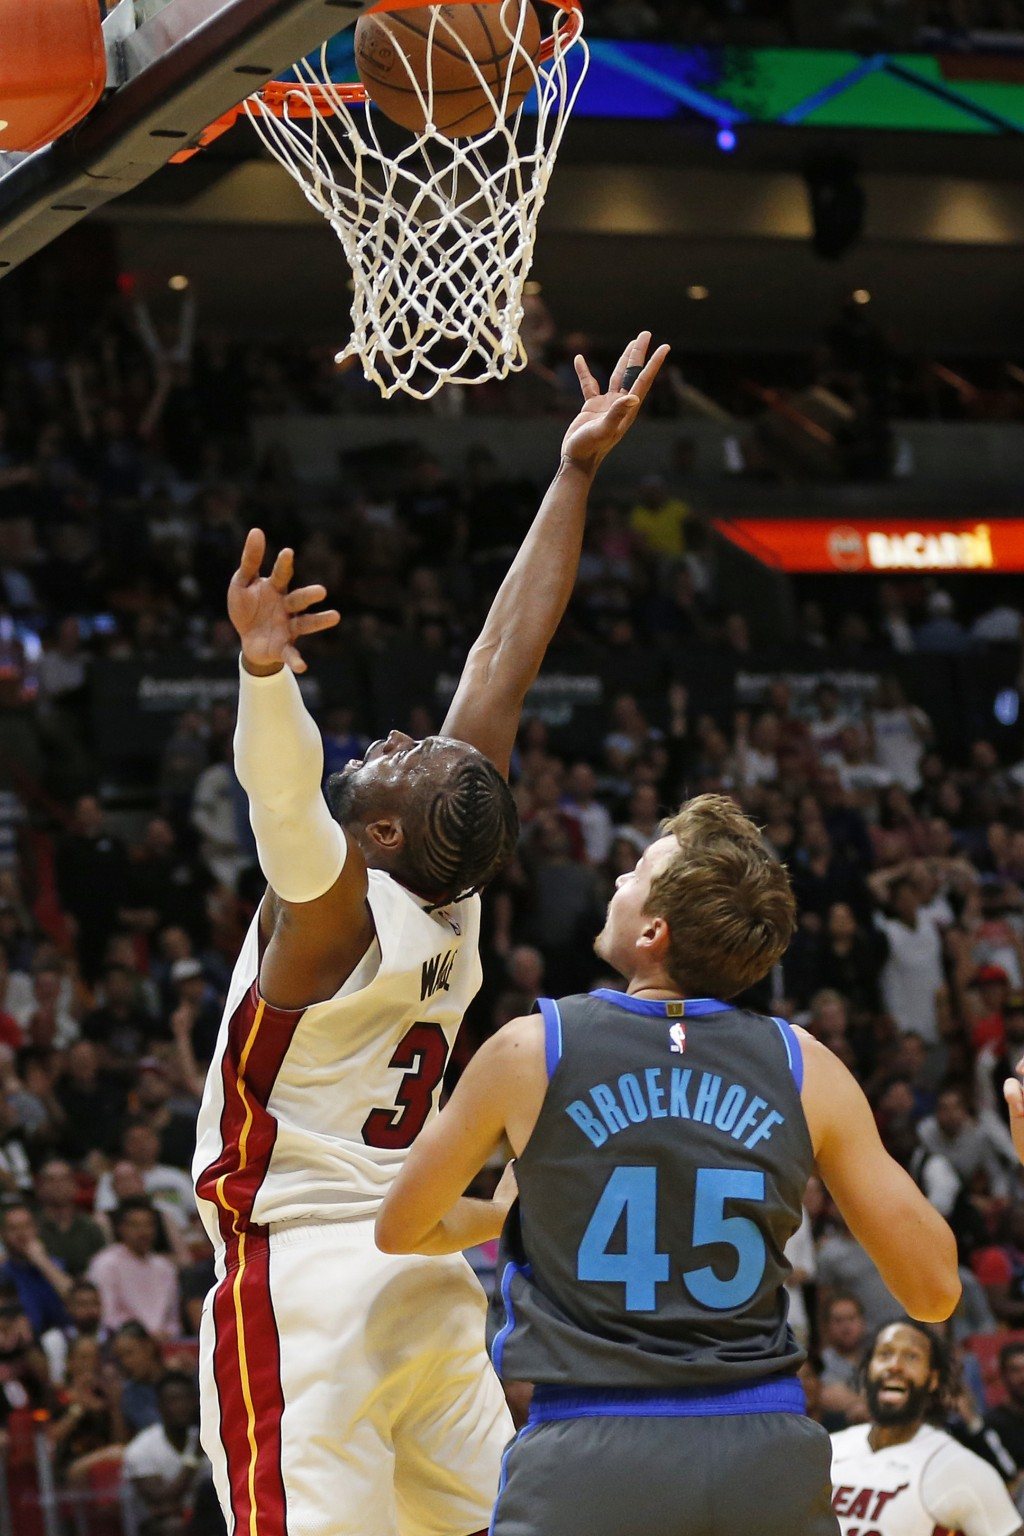 Miami Heat guard Dwyane Wade (3) scores the final basket of the game against Dallas Mavericks guard Ryan Broekhoff (45) during the second half of an N